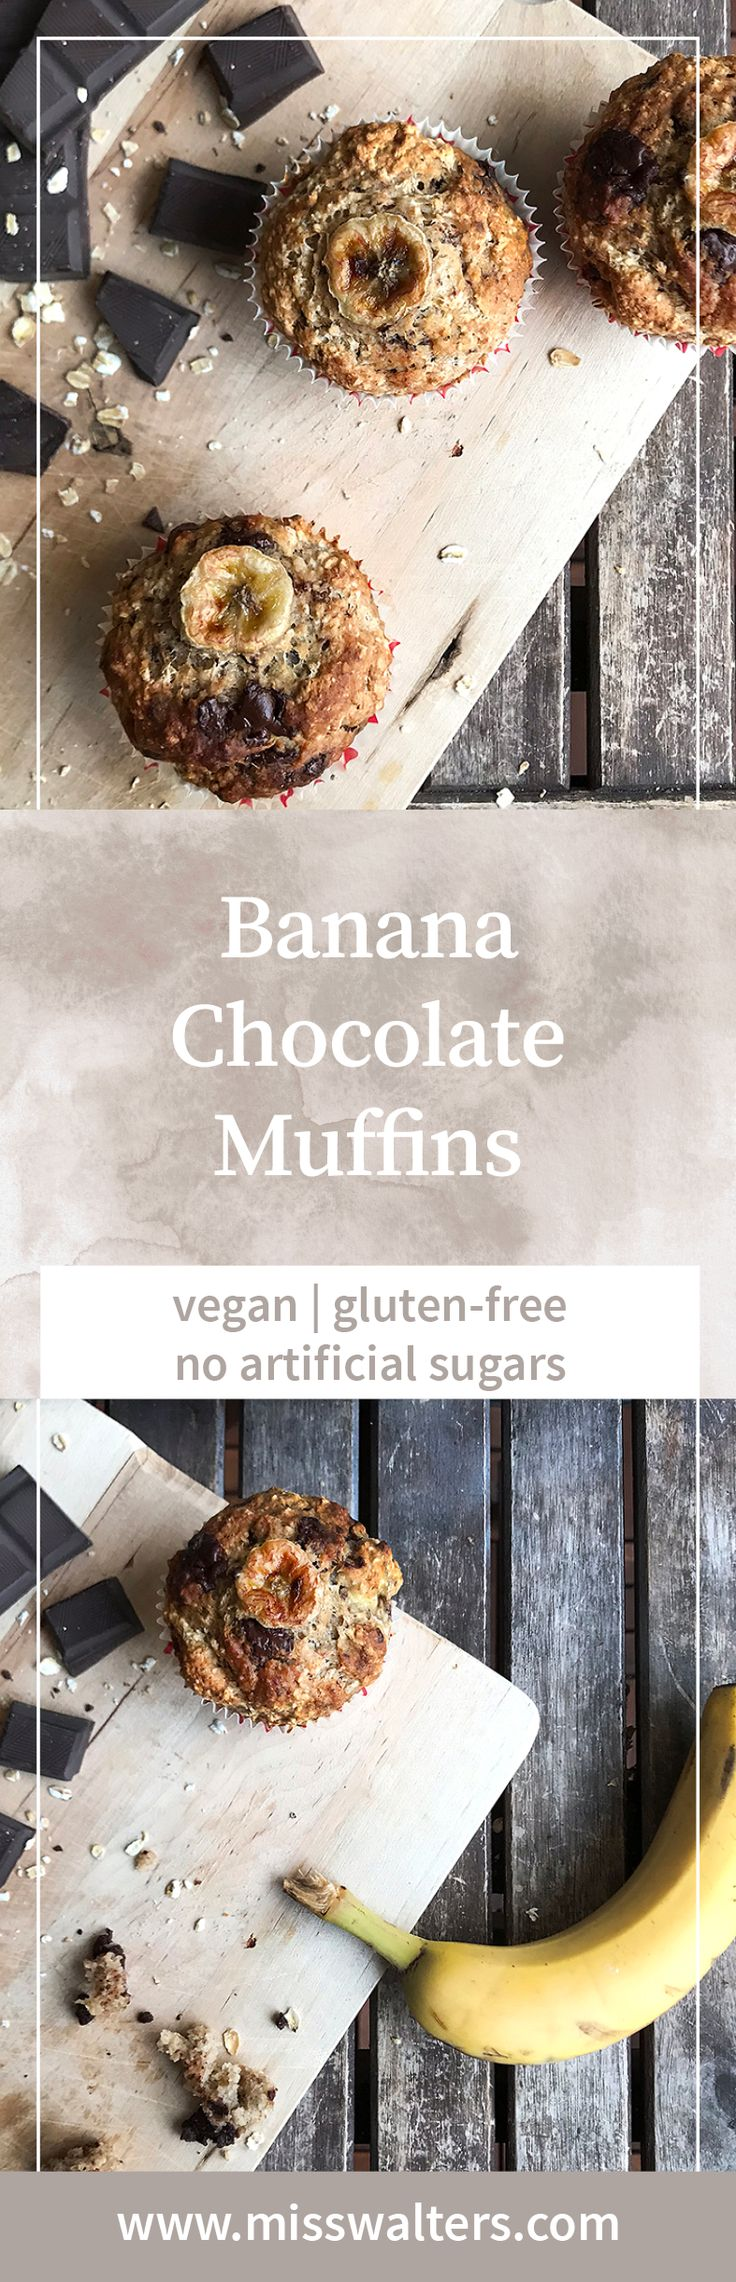 A party classic: These deliciously moist Banana Chocolate Muffins are vegan and super easy to bake.